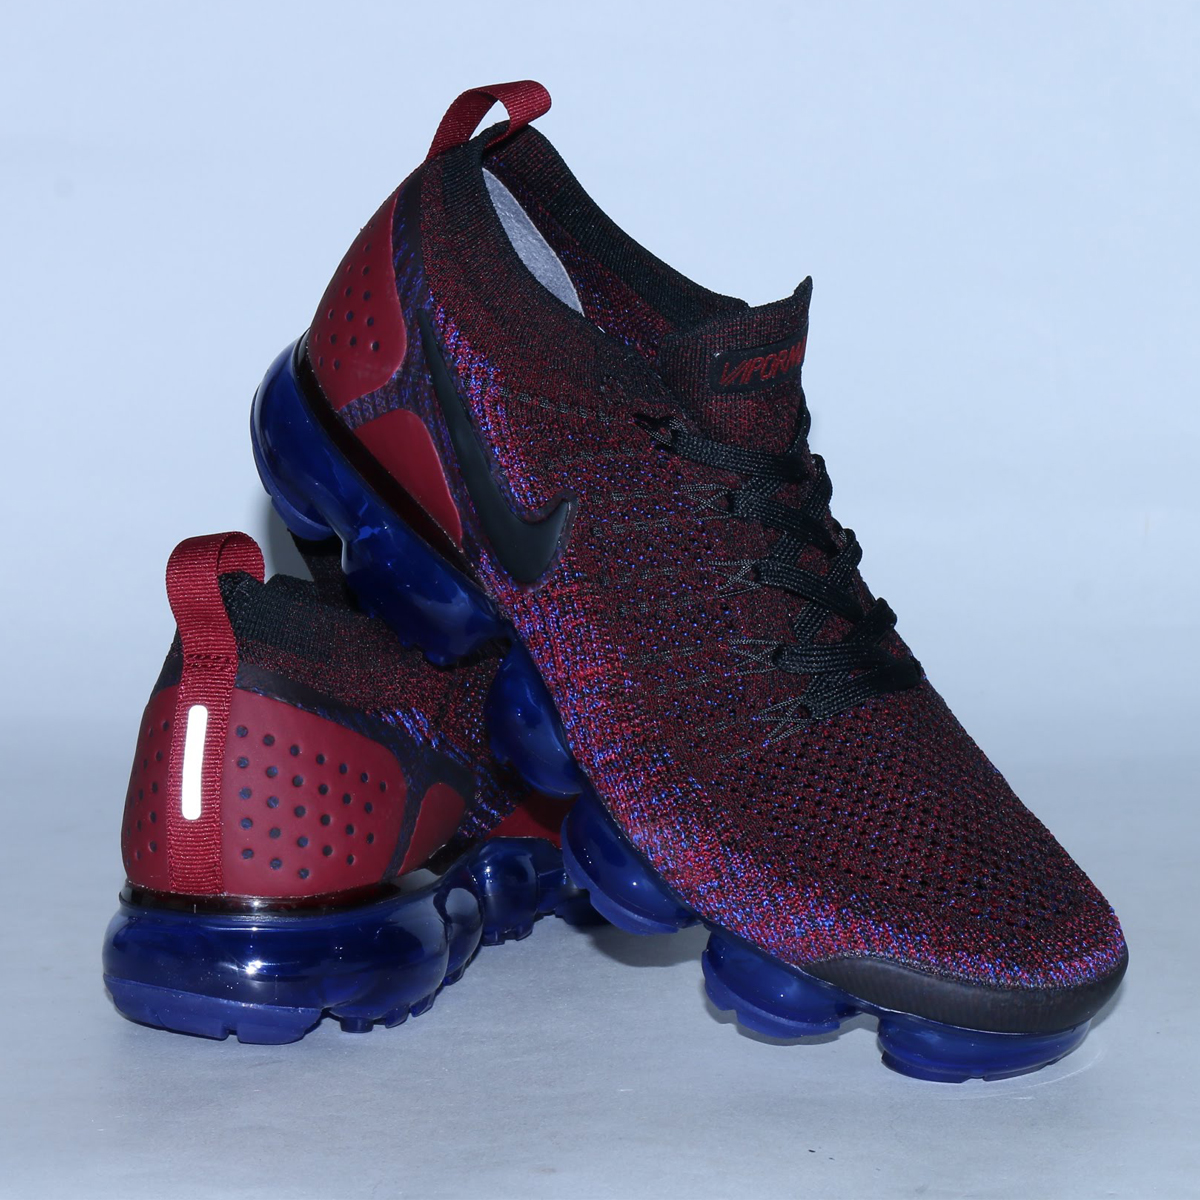 be459d462cc778 NIKE AIR VAPORMAX FLYKNIT 2 (Nike air vapor max fried food knit 2) (BLACK  BLACK-TEAM RED-RACER BLUE) 18SU-S